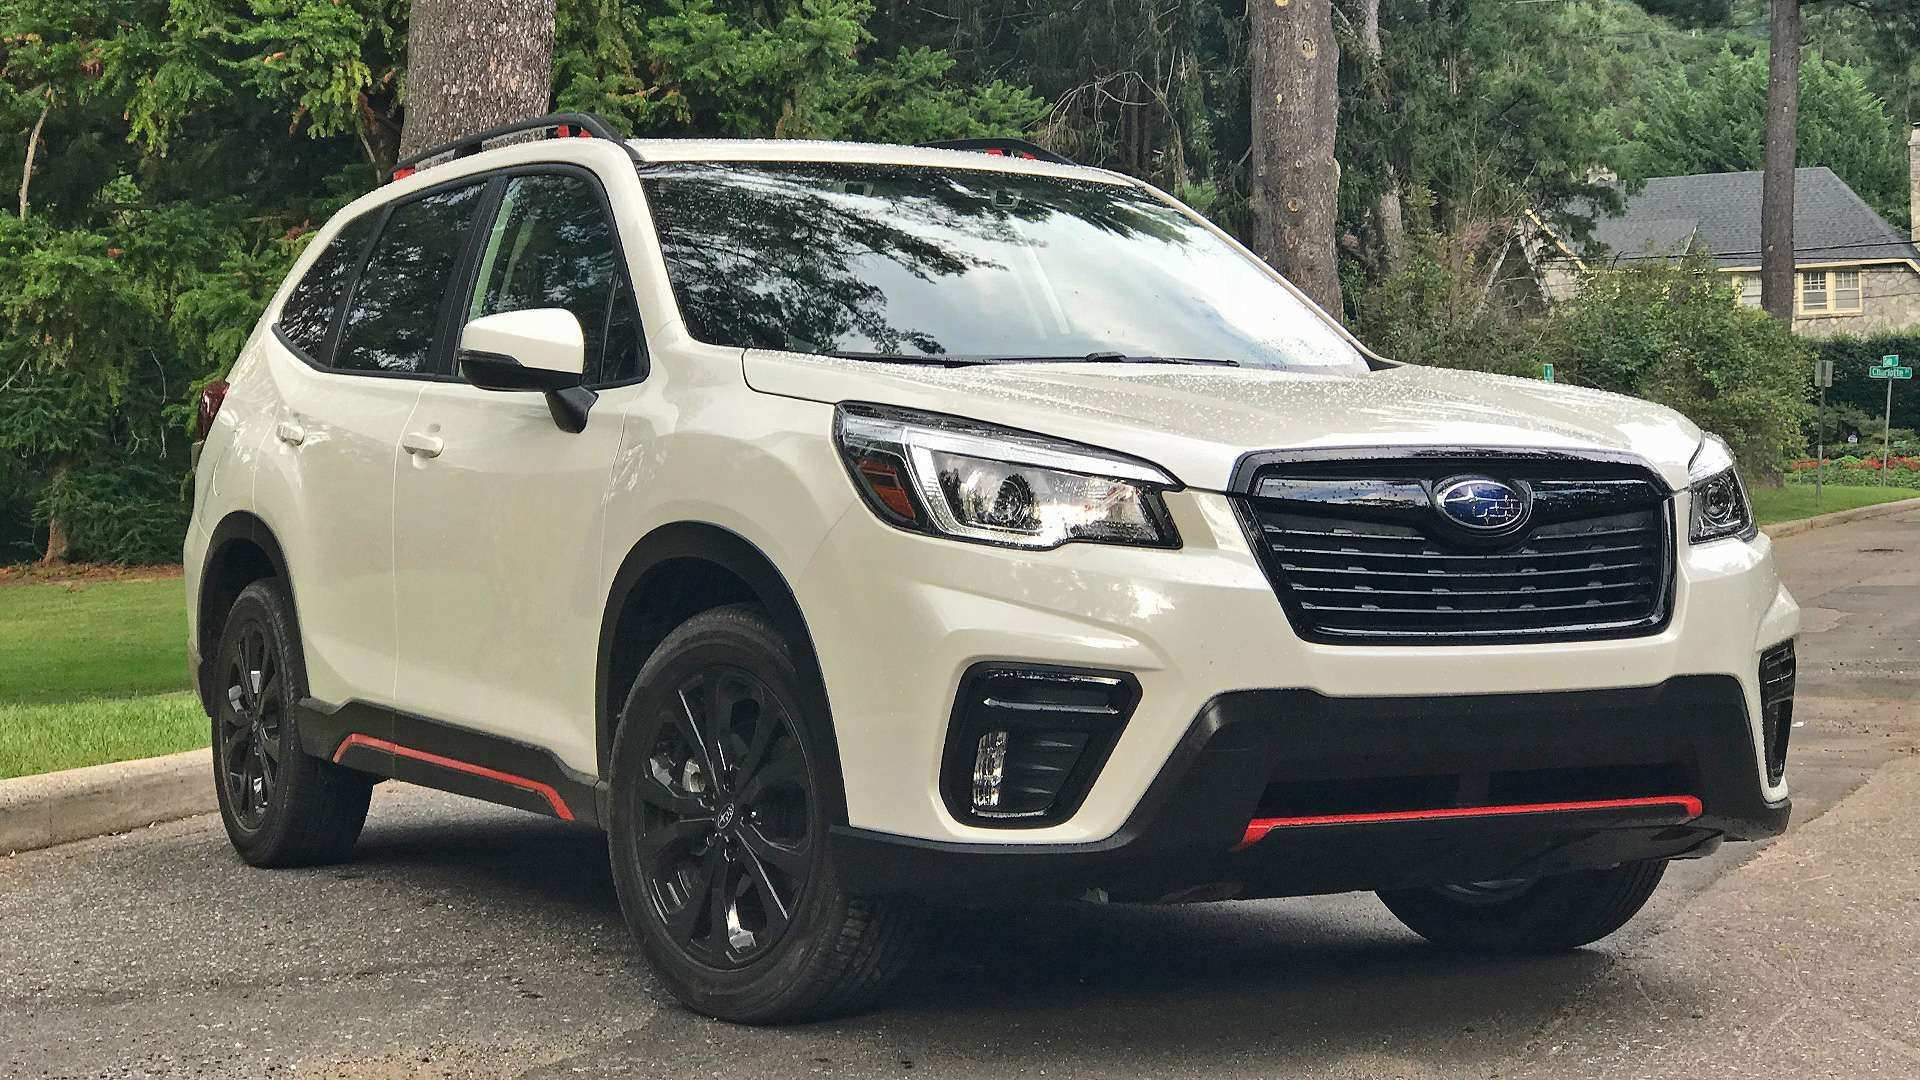 56 Gallery of New Subaru Cars 2019 Spy Shoot First Drive for New Subaru Cars 2019 Spy Shoot